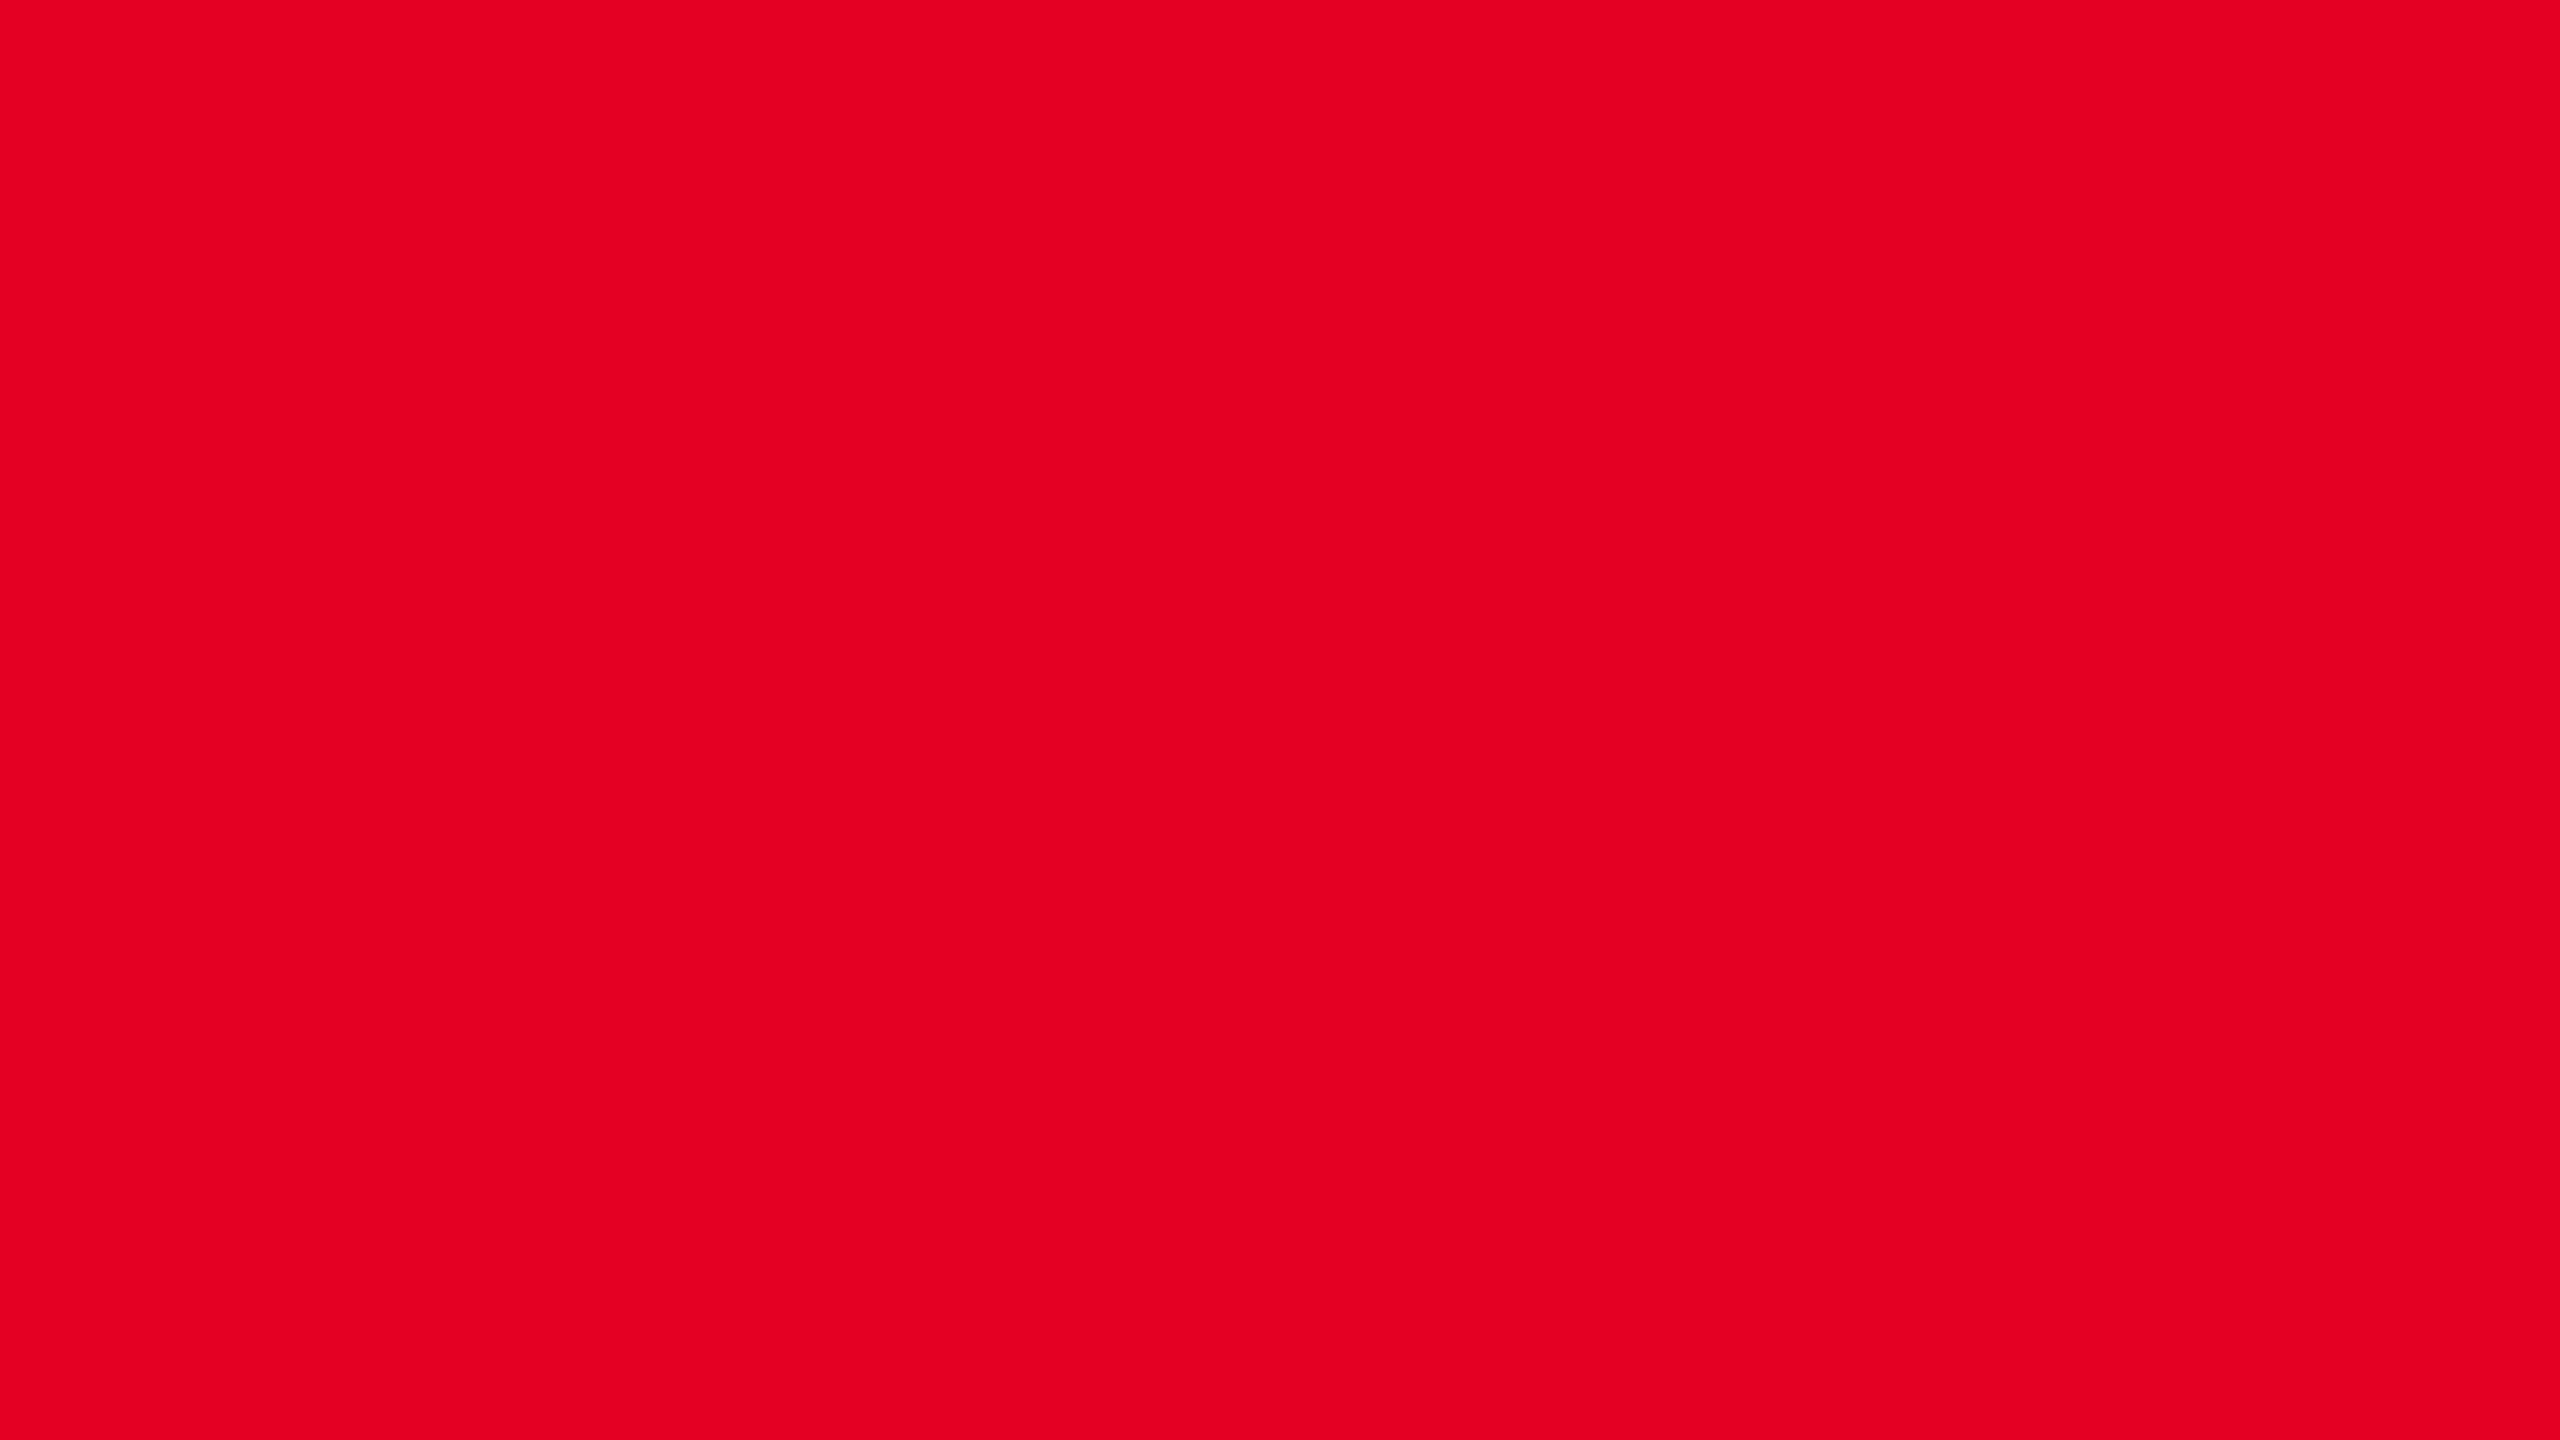 2560x1440 Cadmium Red Solid Color Background